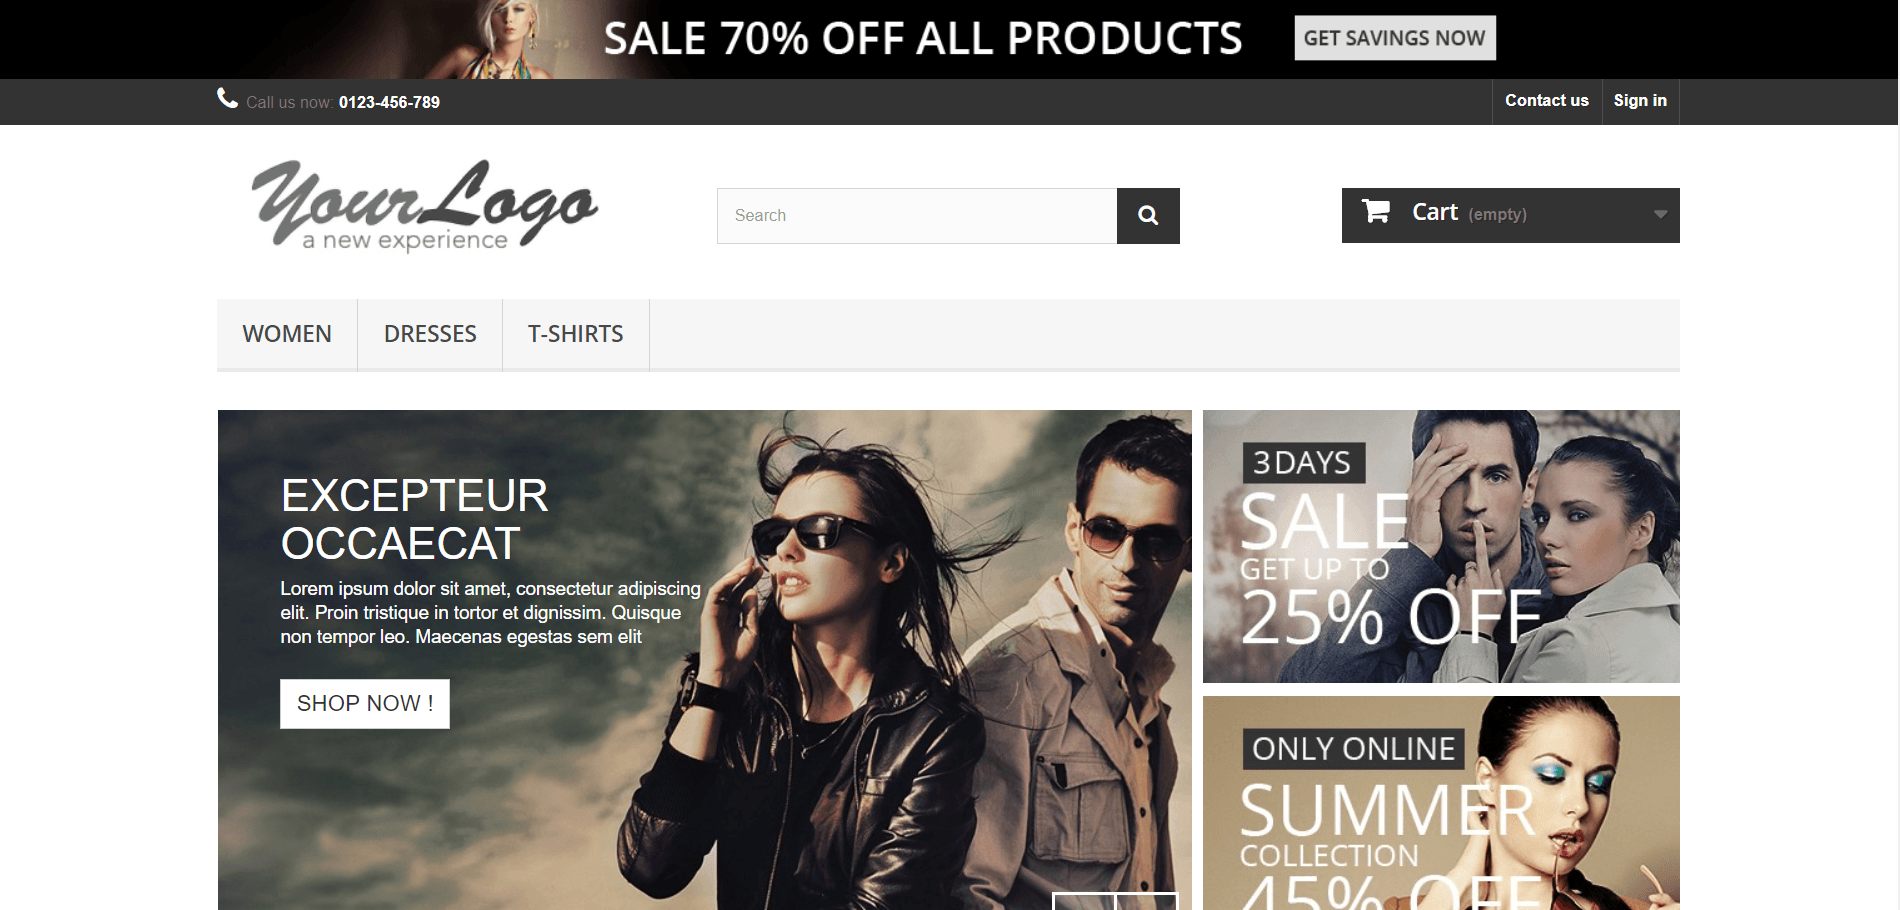 a very nice fake ecommerce ite to practice automation testing